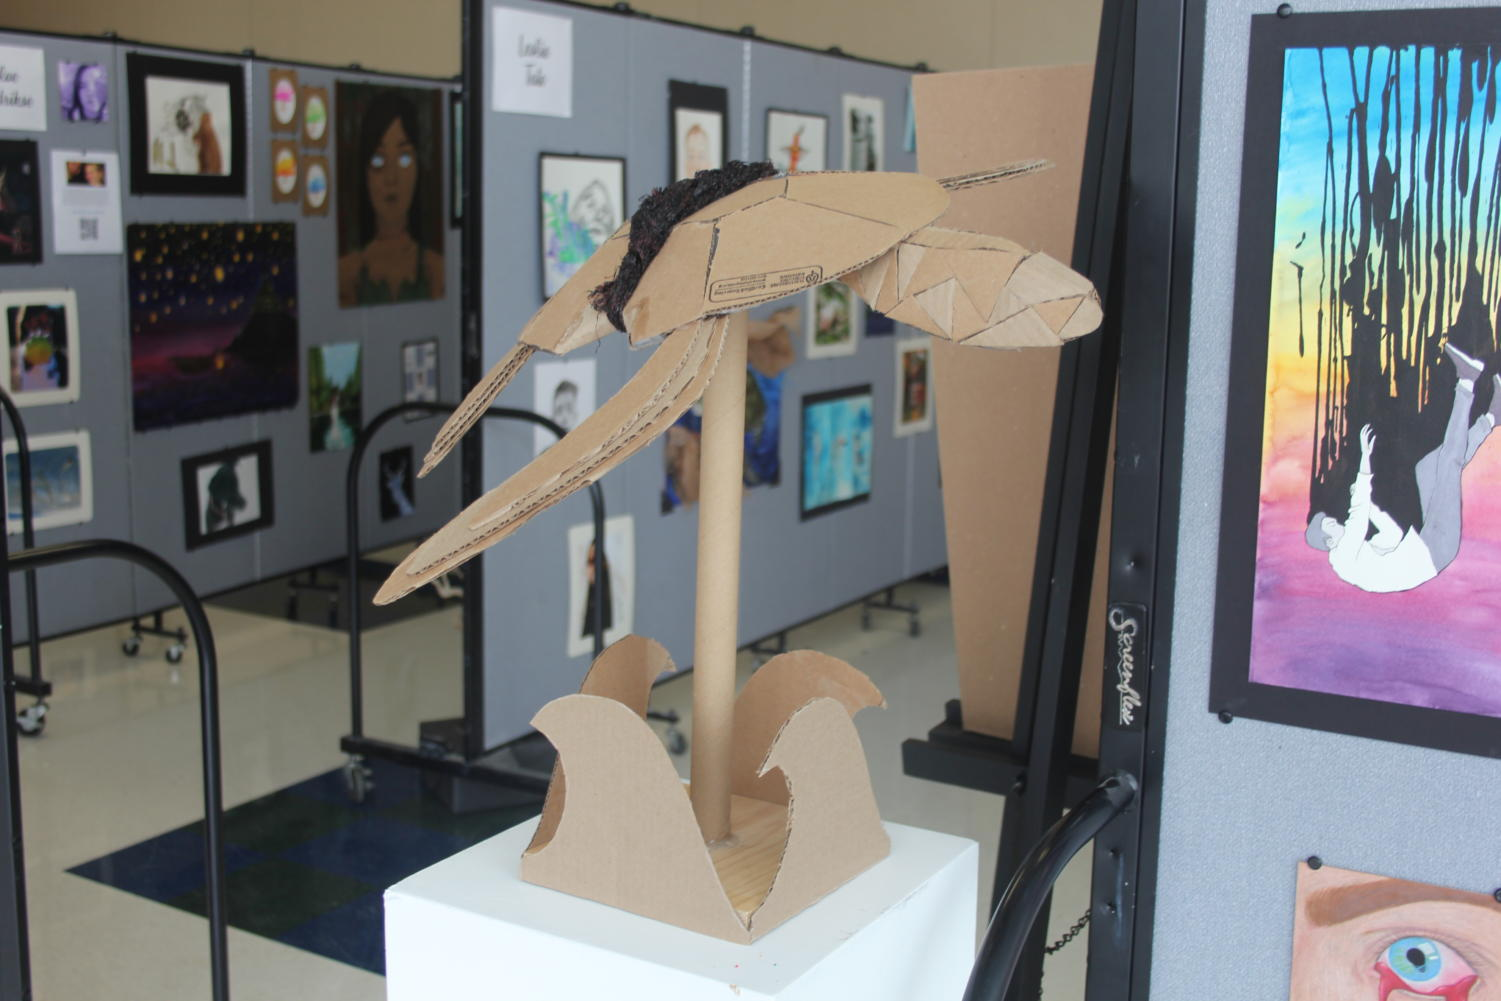 Part+of+Haenni%E2%80%99s+collection+includes+a+turtle+sculpture+made+out+of+cardboard.%0A